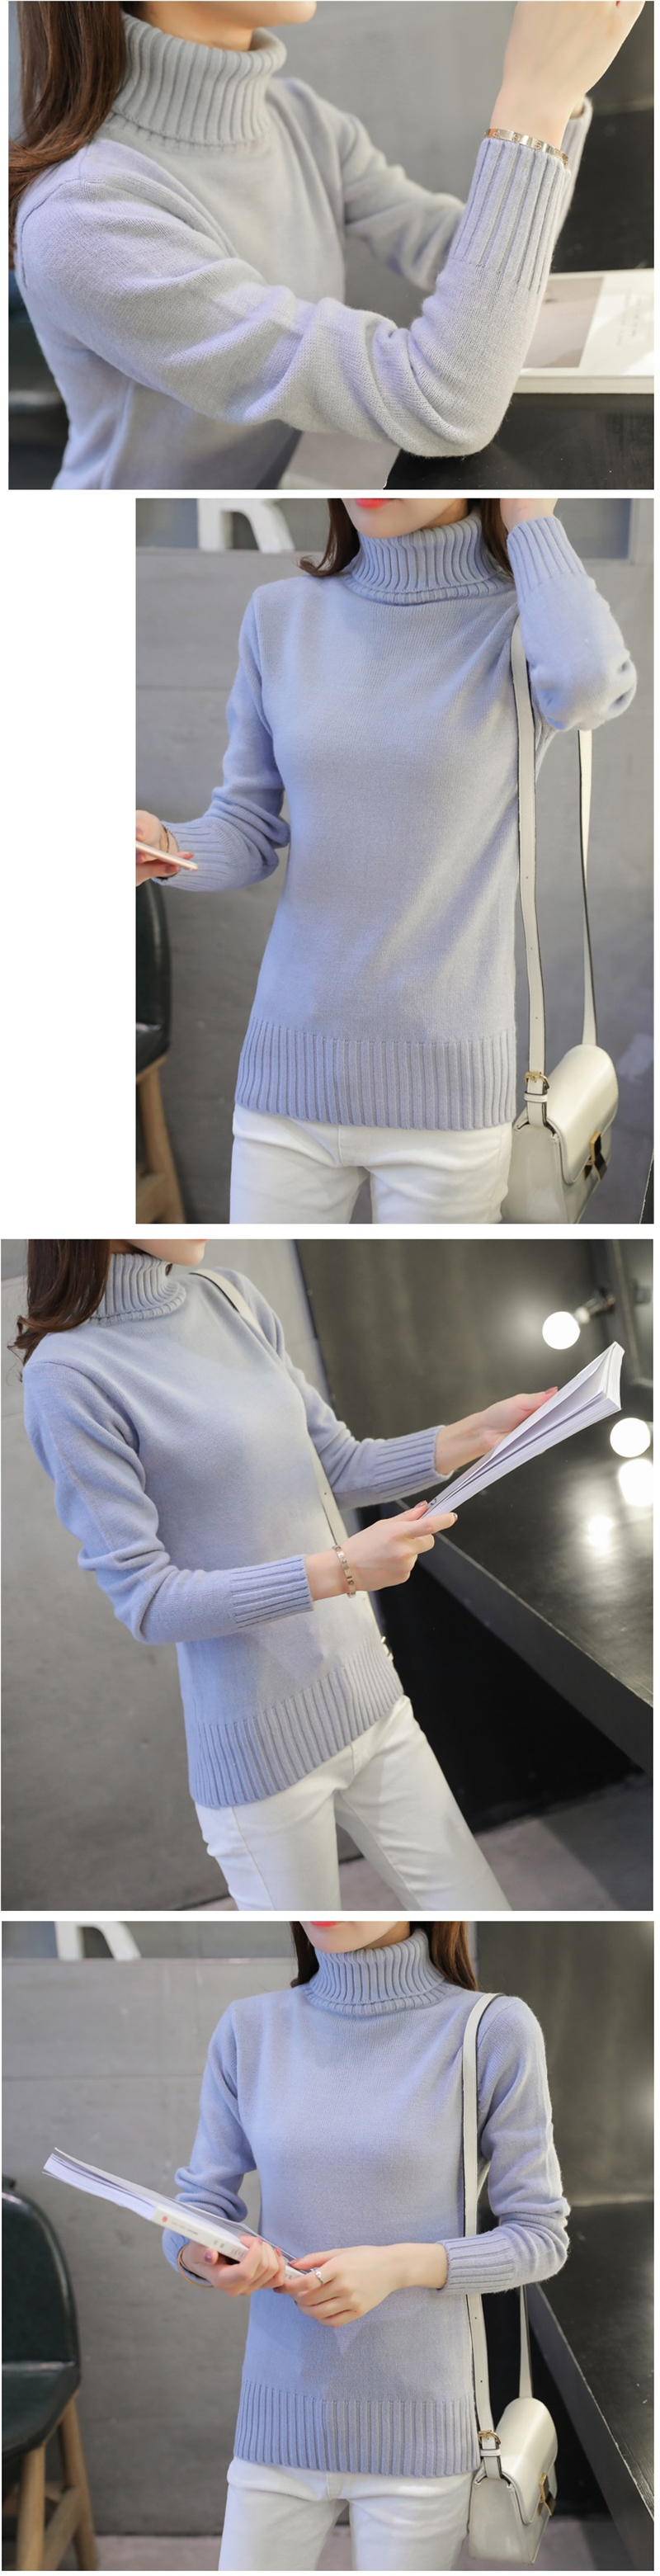 18 New Autumn winter Women Knitted Sweaters Pullovers Turtleneck Long Sleeve Solid Color Slim Elastic Short Sweater Women K861 9